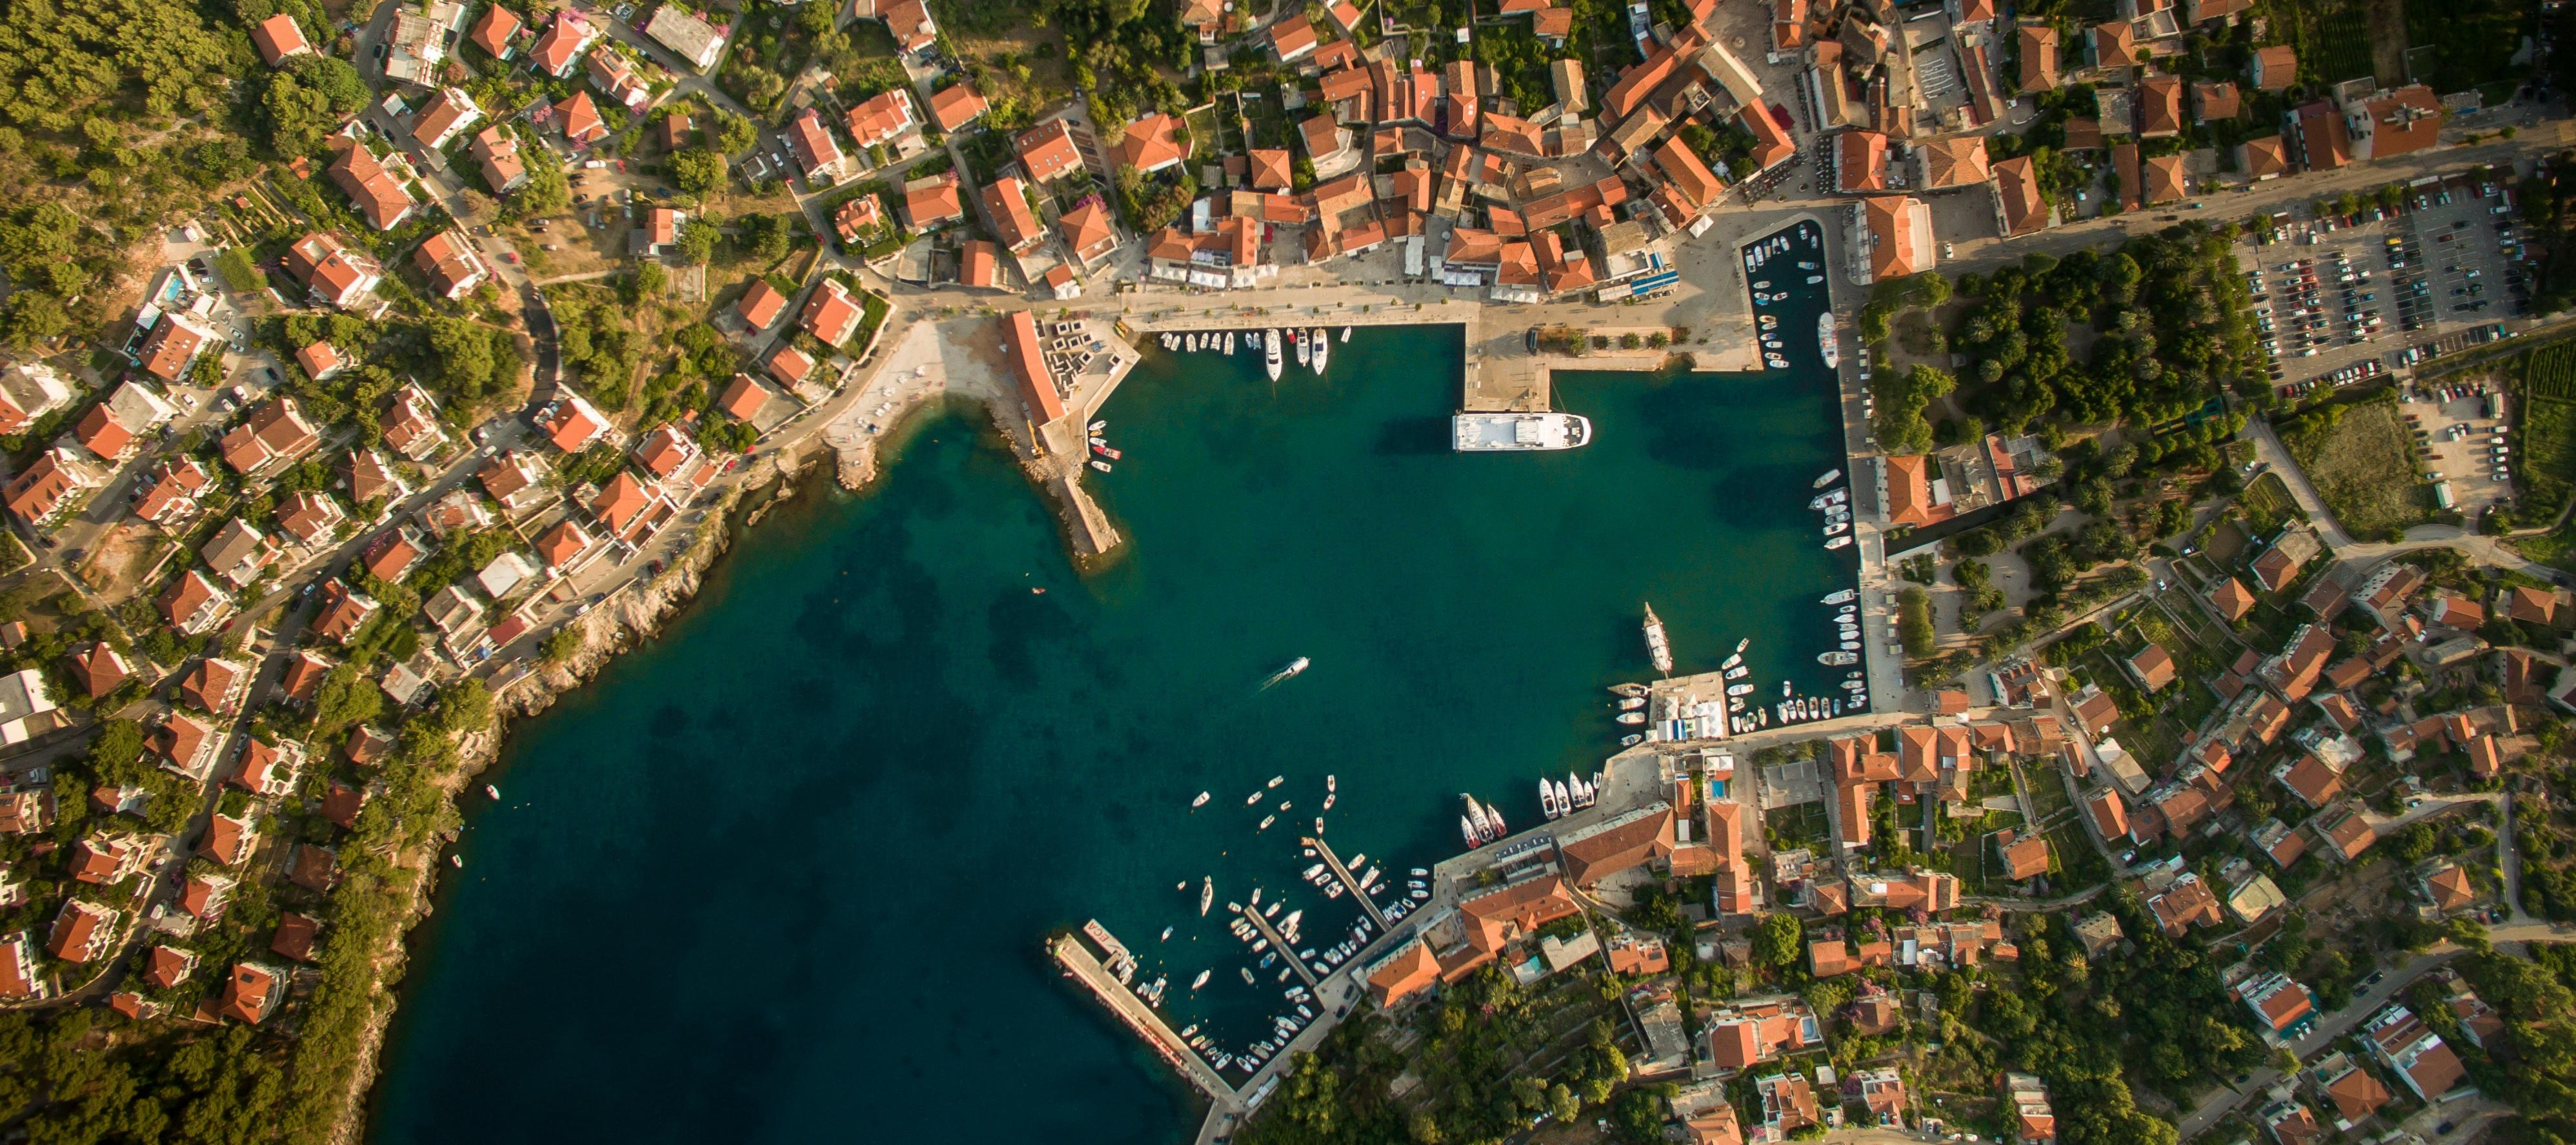 Aerial view of town in Croatia